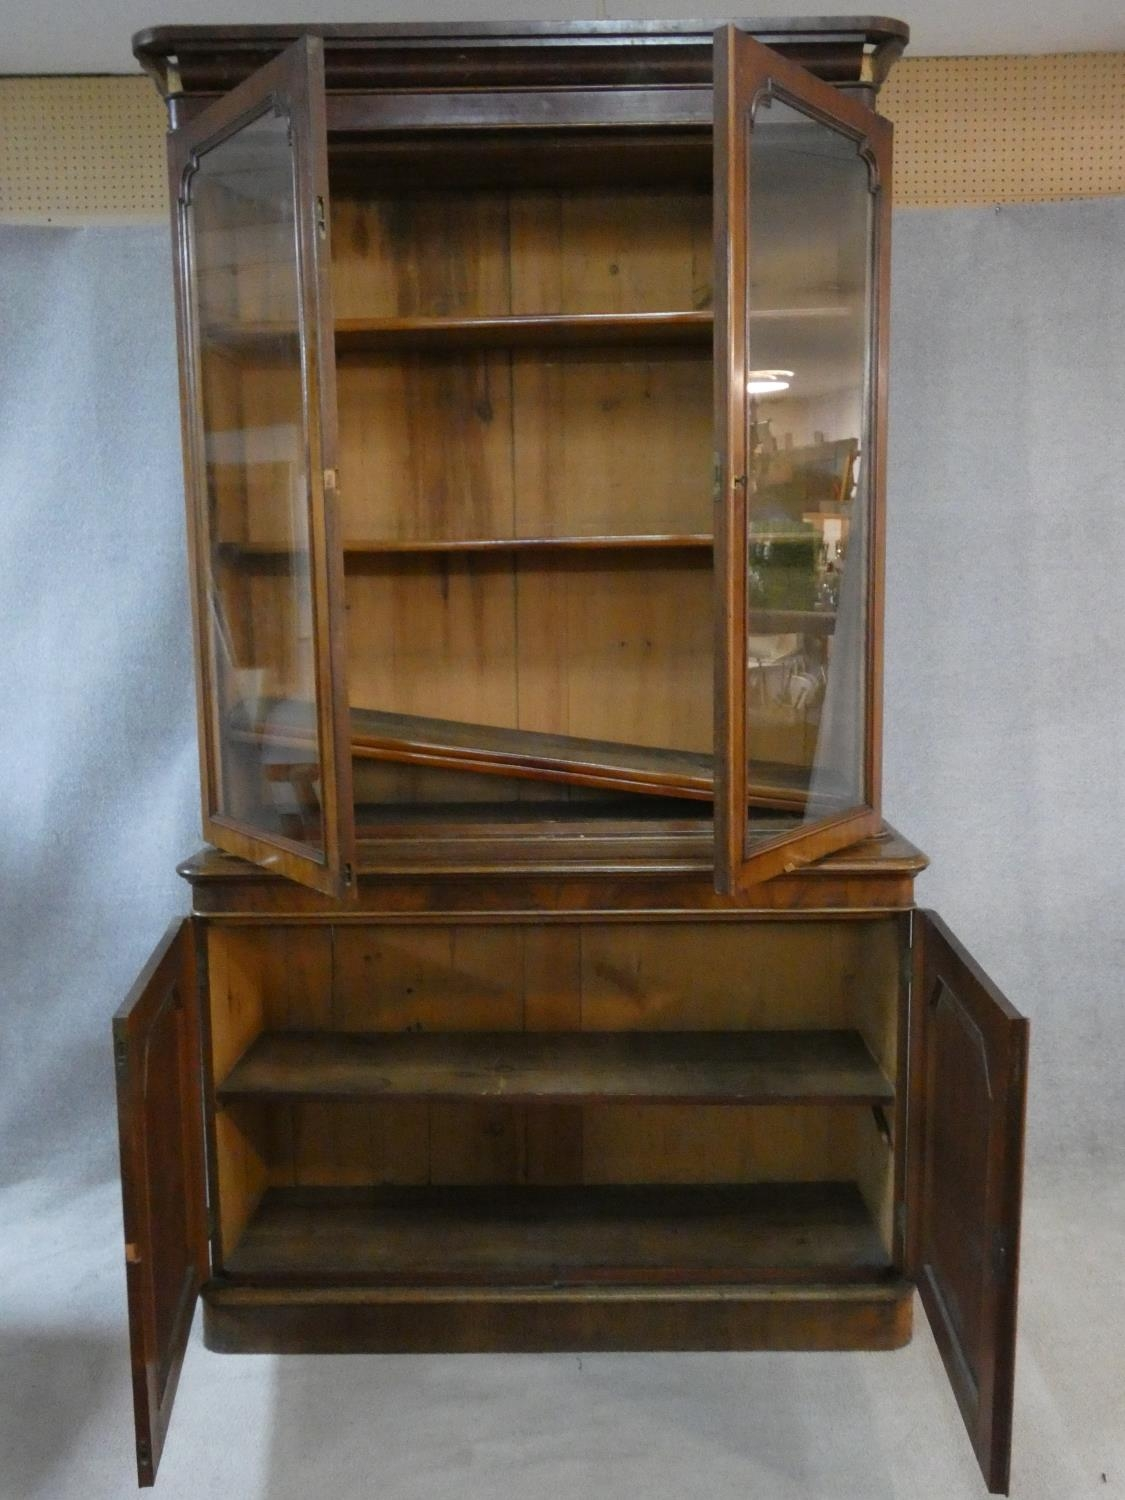 A Victorian mahogany library bookcase with upper glazed doors enclosing book shelves above base - Image 2 of 5